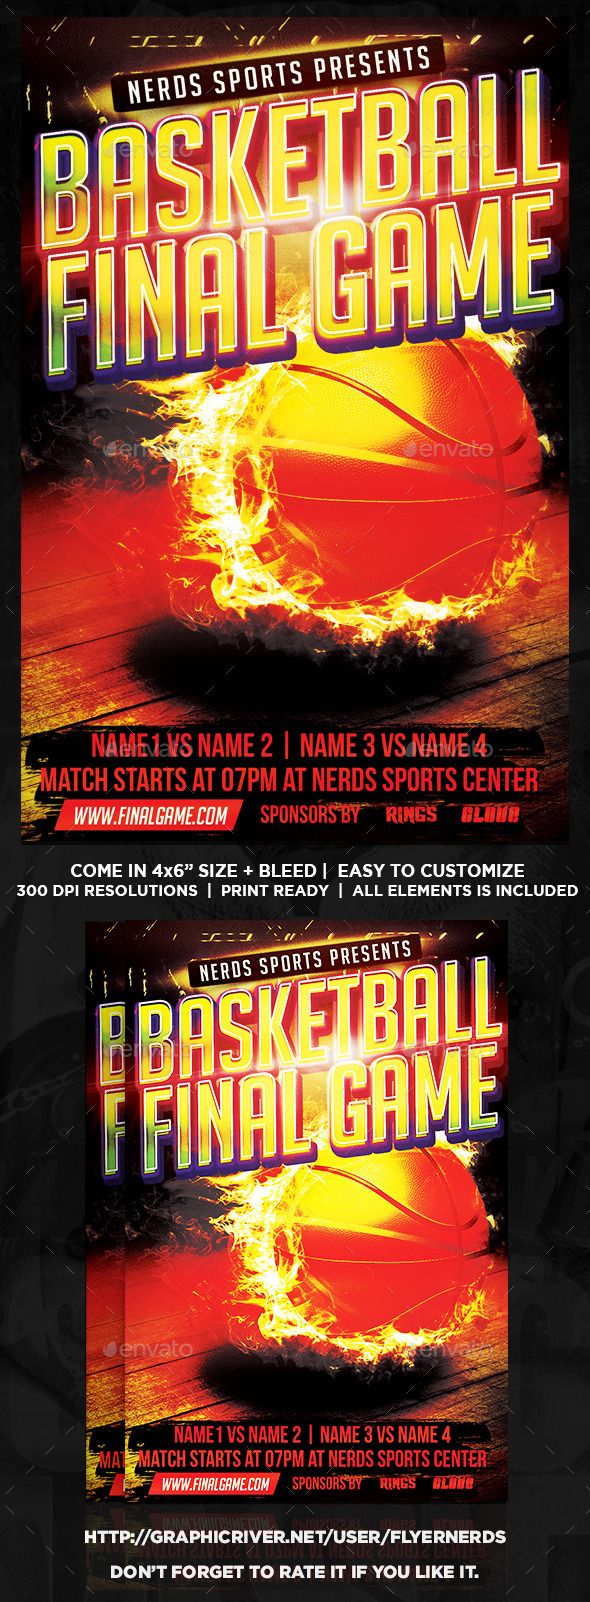 Basketball Finals Game Sports Flyer by flyernerds Basketball Finals Game Sports Flyer Description :46 with bleedPrint Ready ( CMYK, 300DPI ) Easy to edit and fully customizable All